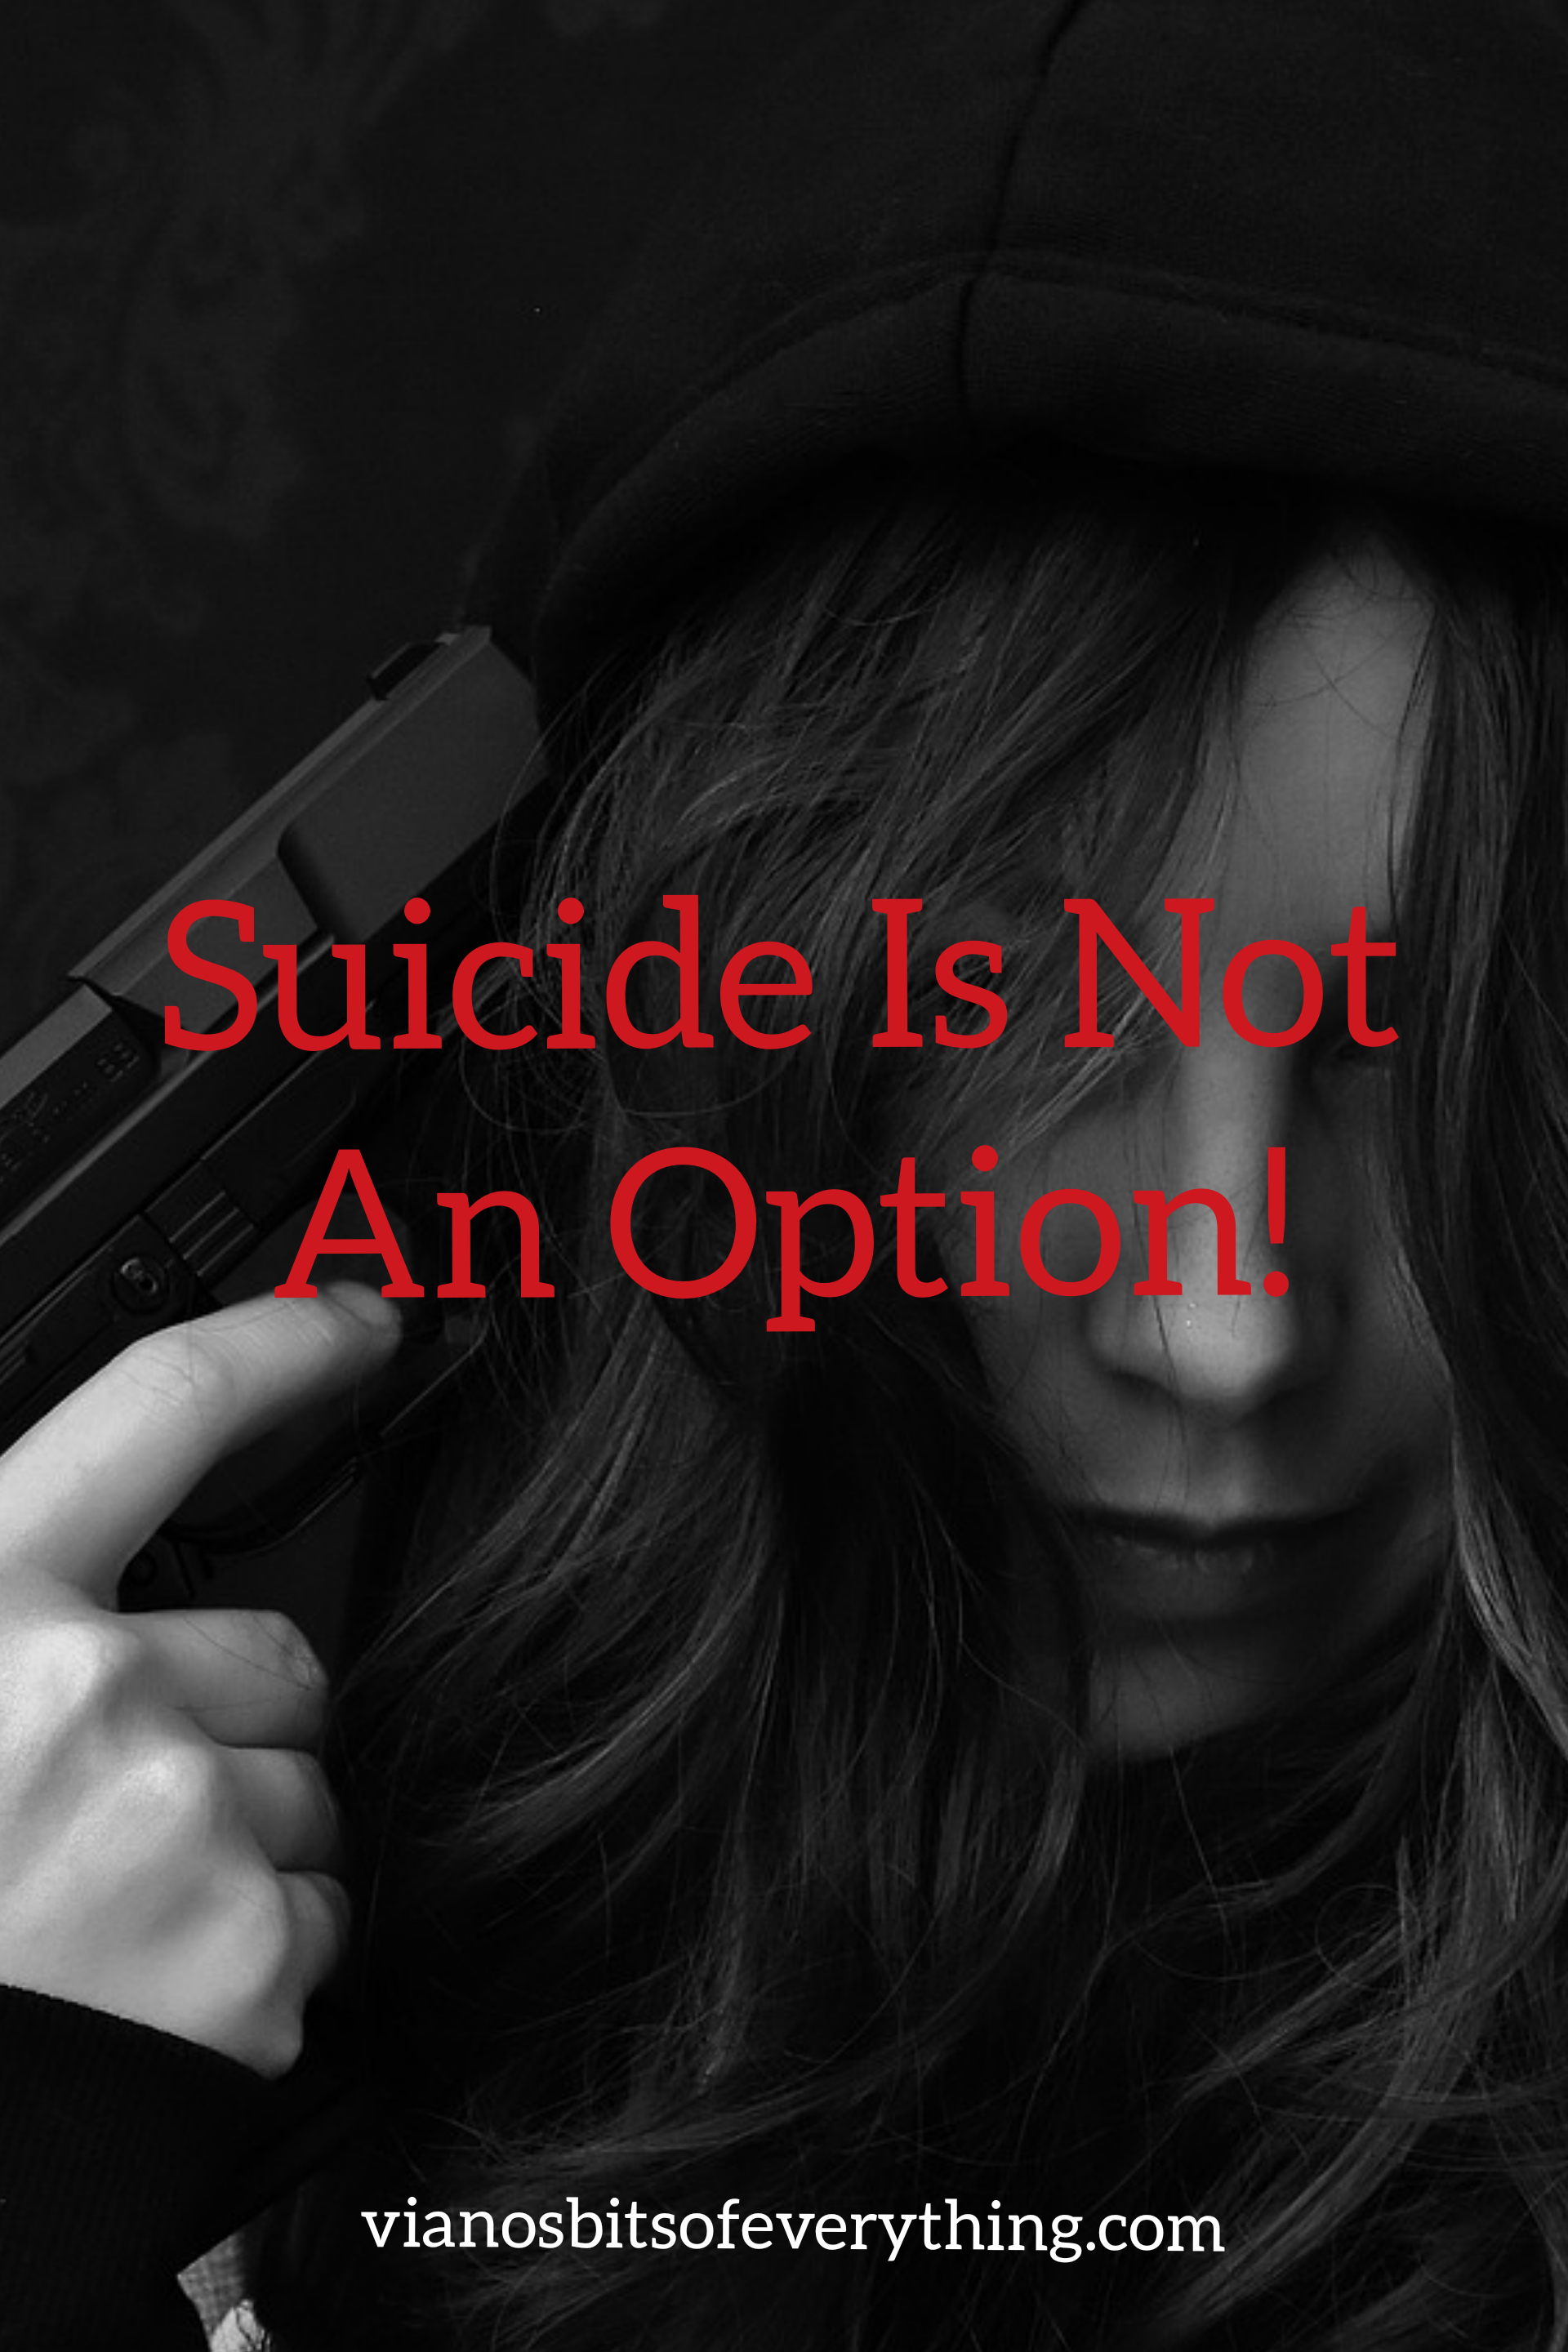 Suicide Is Not an Option!